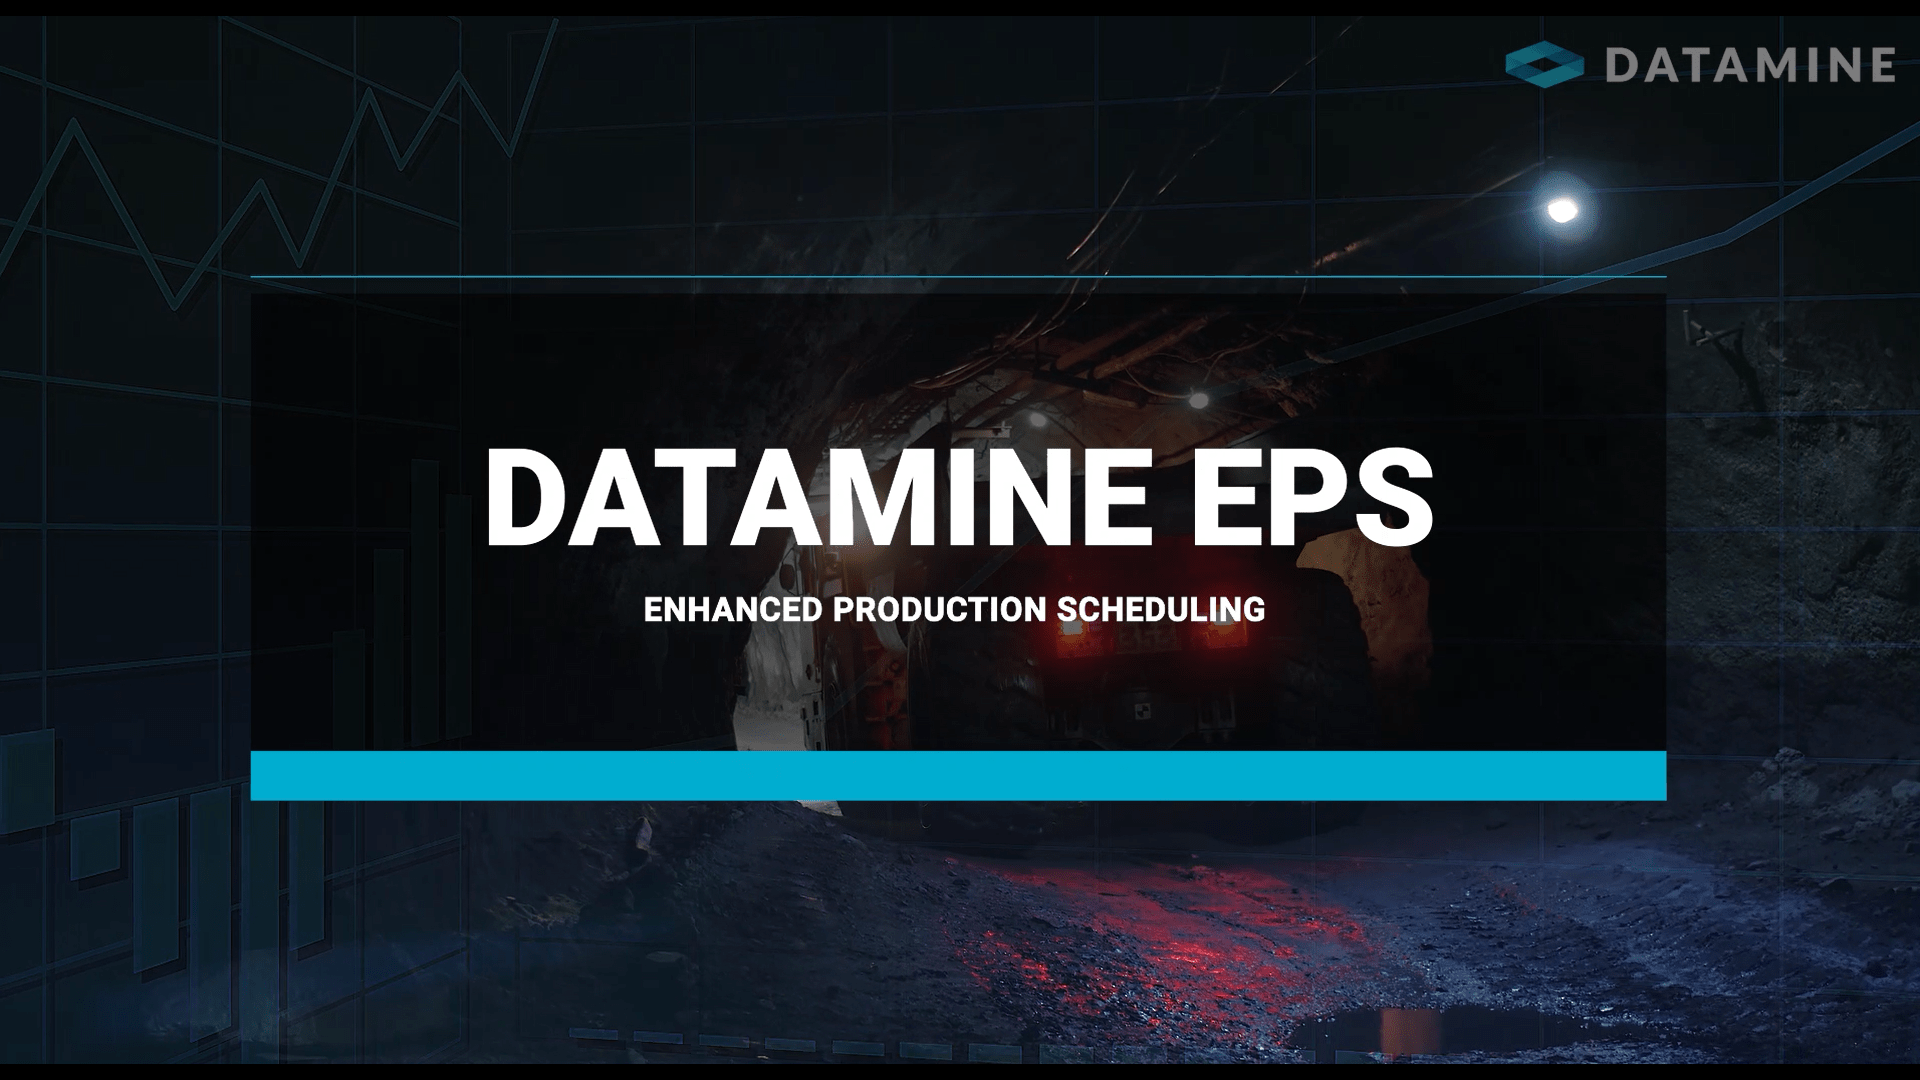 title screen of the video with the words 'Datamine EPS Enhanced Production Scheduling' over a background image of a truck in an underground tunnel